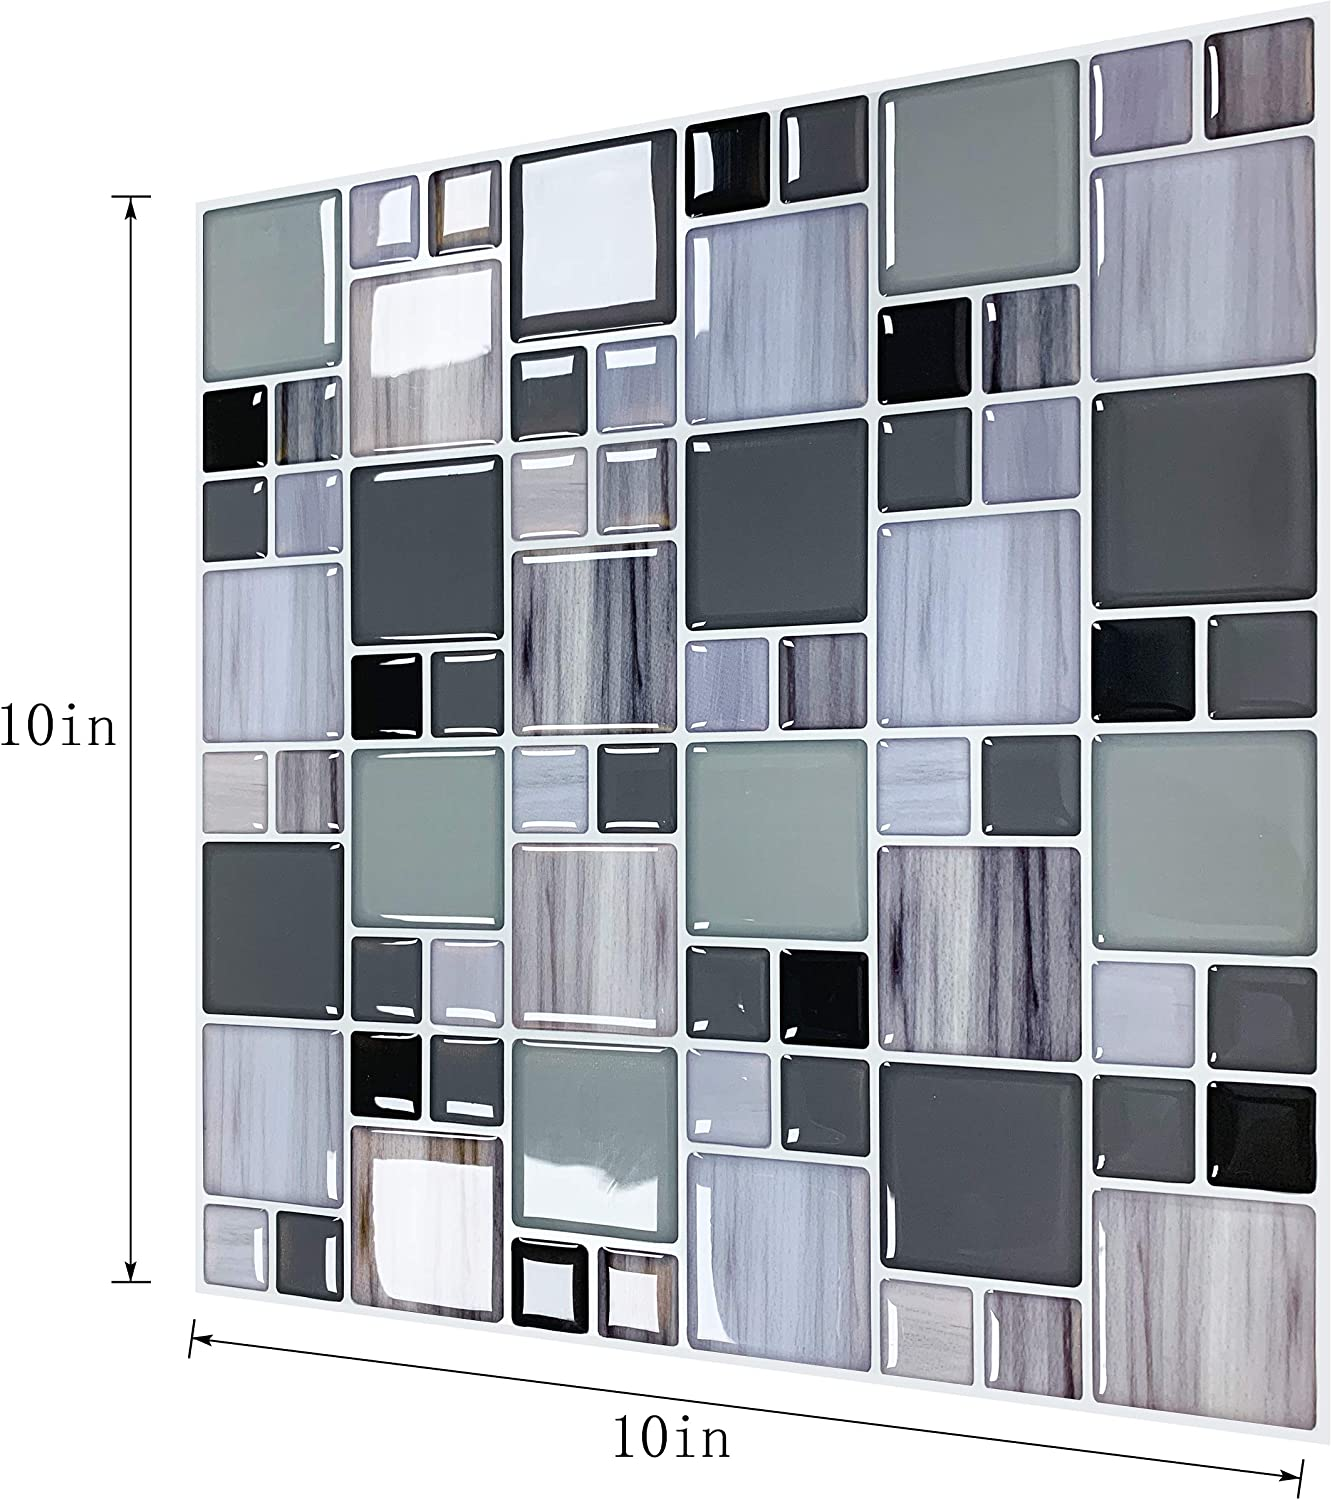 Blue 5 Sheets Self Adhesive Removeable Stick Decorative Marble Design Heat and Water Proof 3D Wall Tiles Sticker for Kitchen Backsplash Bathroom SHINEONE 10/×10 Peel and Stick Wallpaper